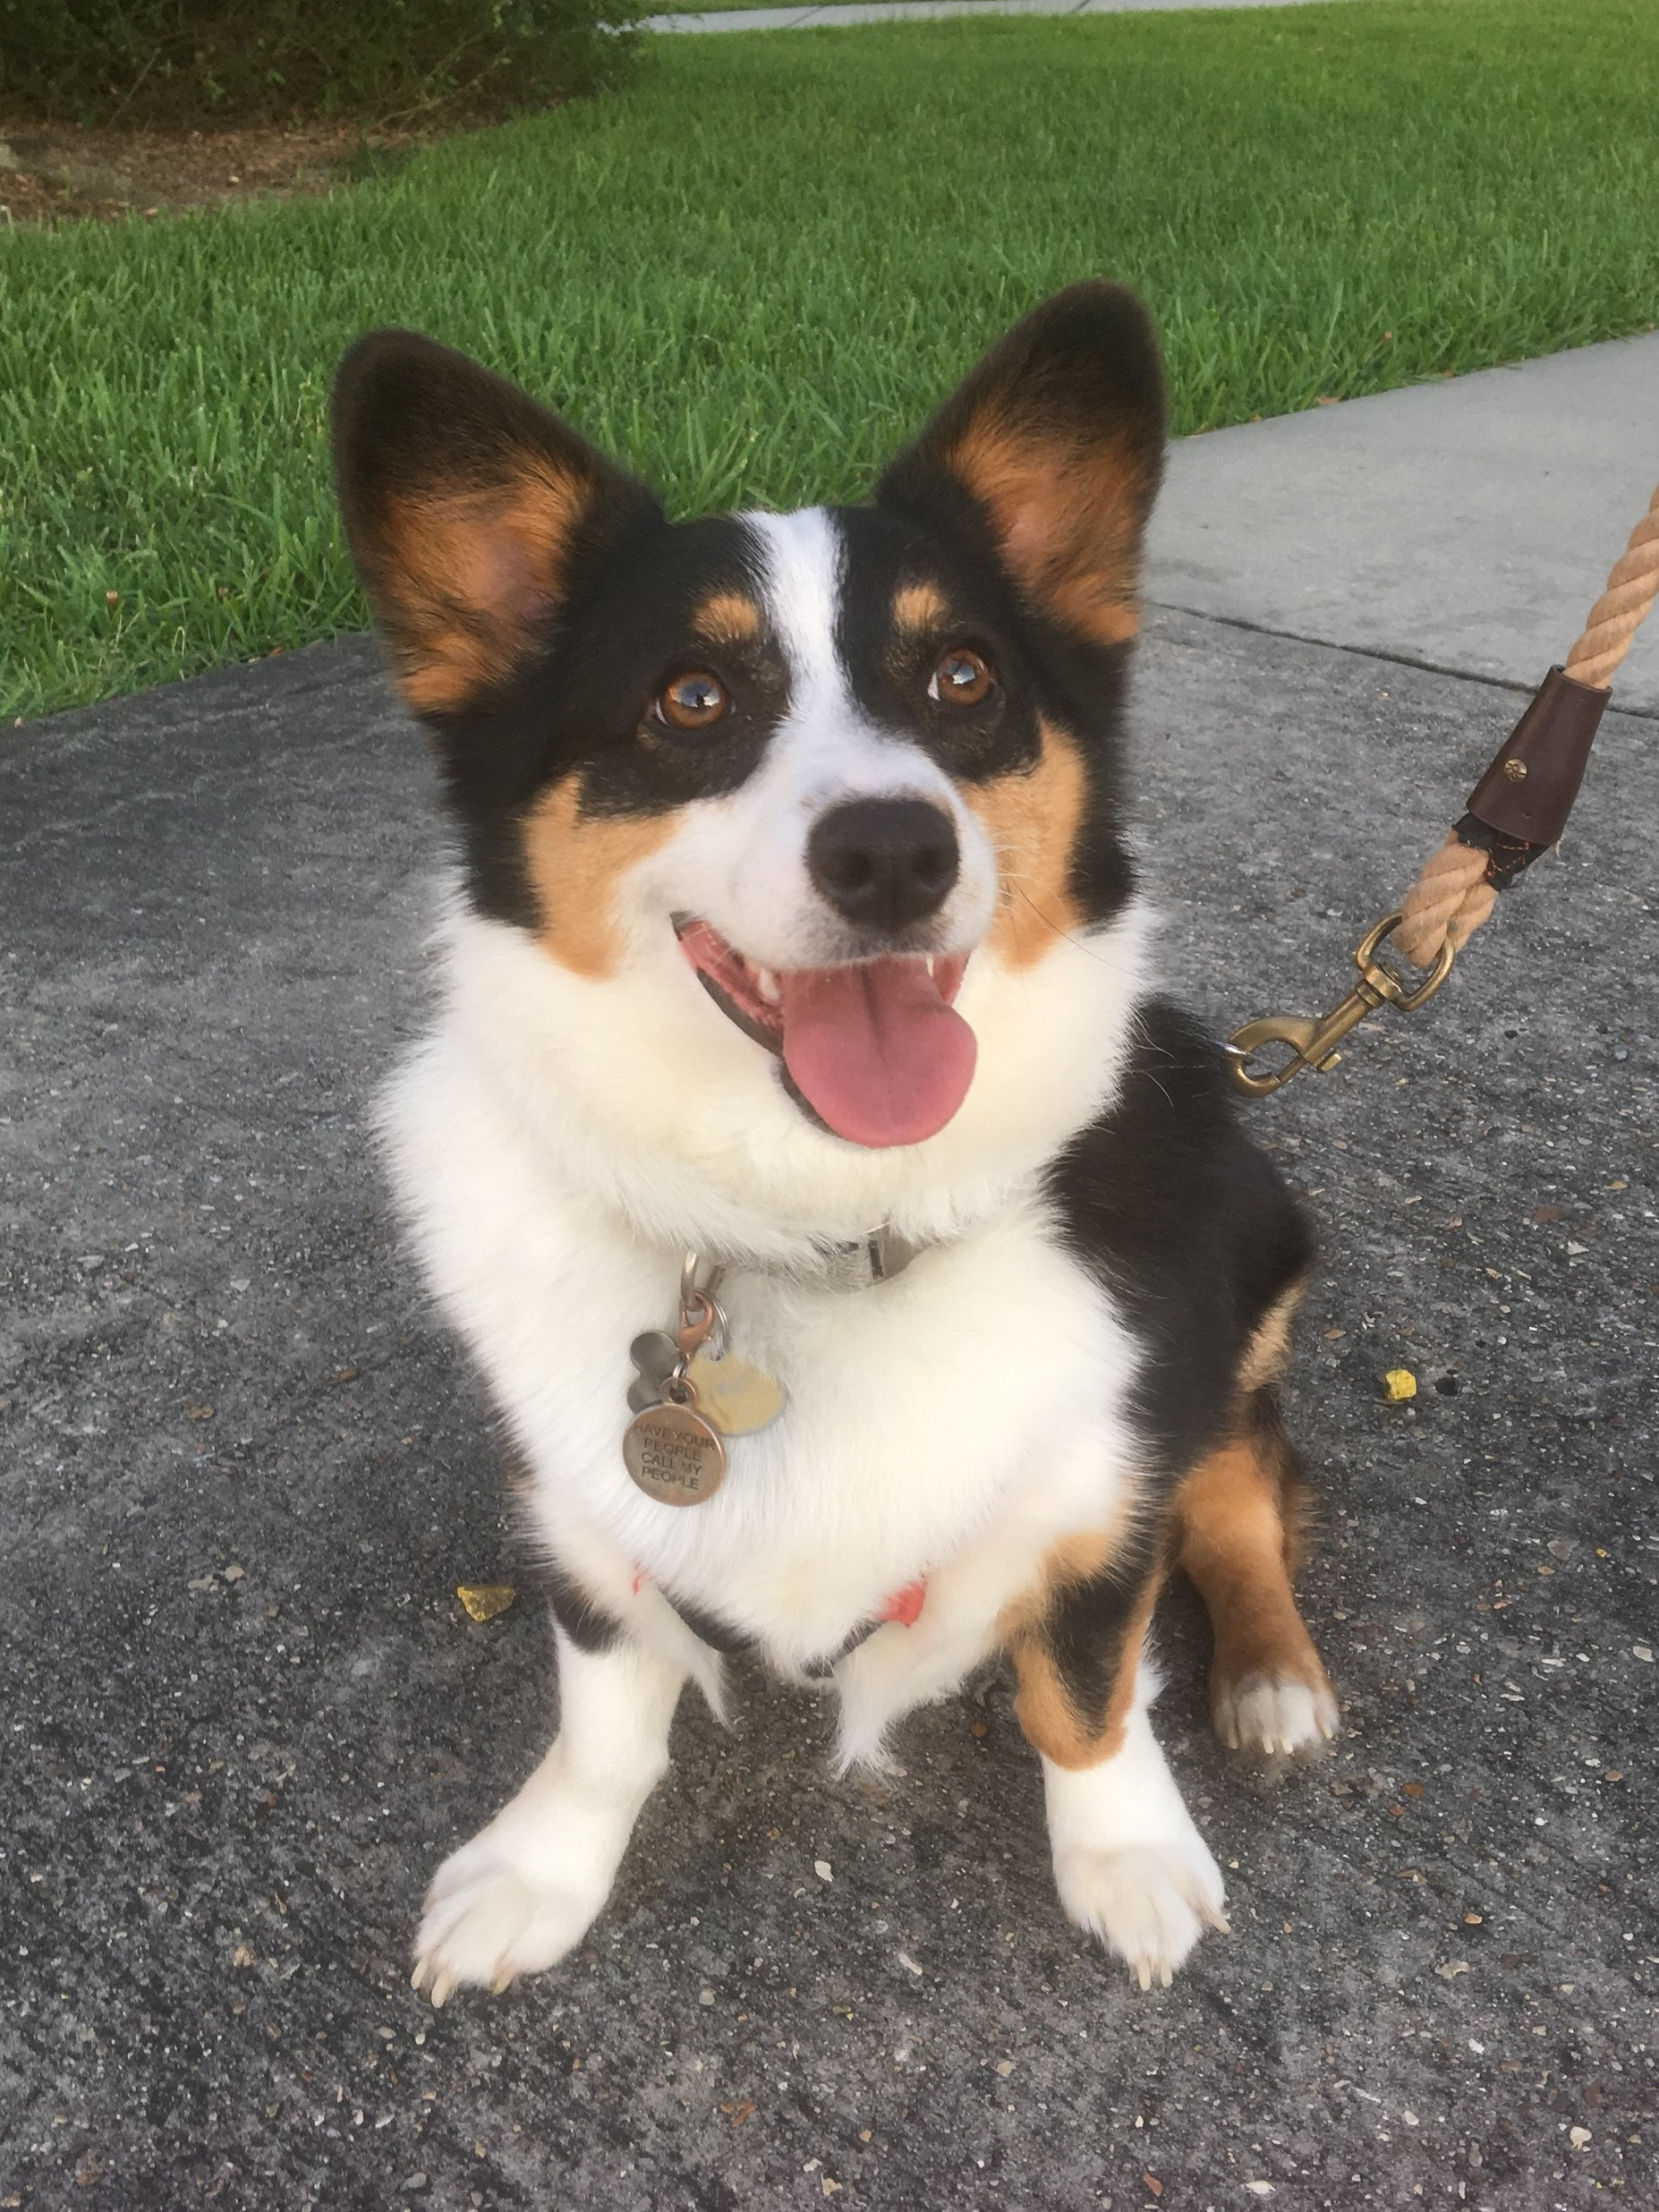 Capitan - 1 year old tricolor corgi who loves (short) walks, chasing his stubby tail, and snuggling on our feet. His favorite place in the world is Camp Bow Wow. He's the most happy, go-lucky boy I know!